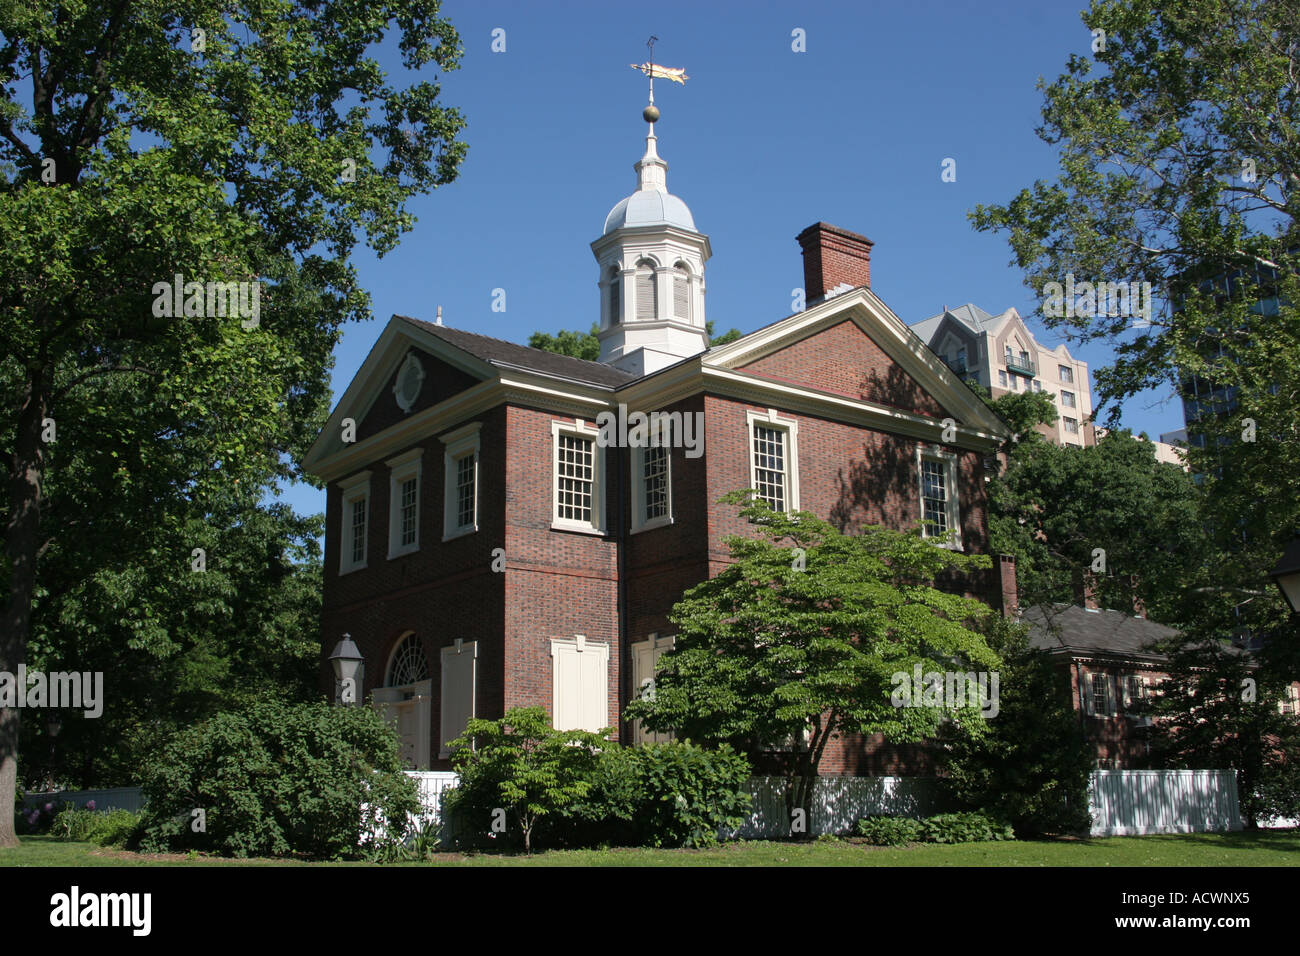 Carpenter s Hall Chestnut Street in Old City district Philadelphia Pennsylvania USA - Stock Image